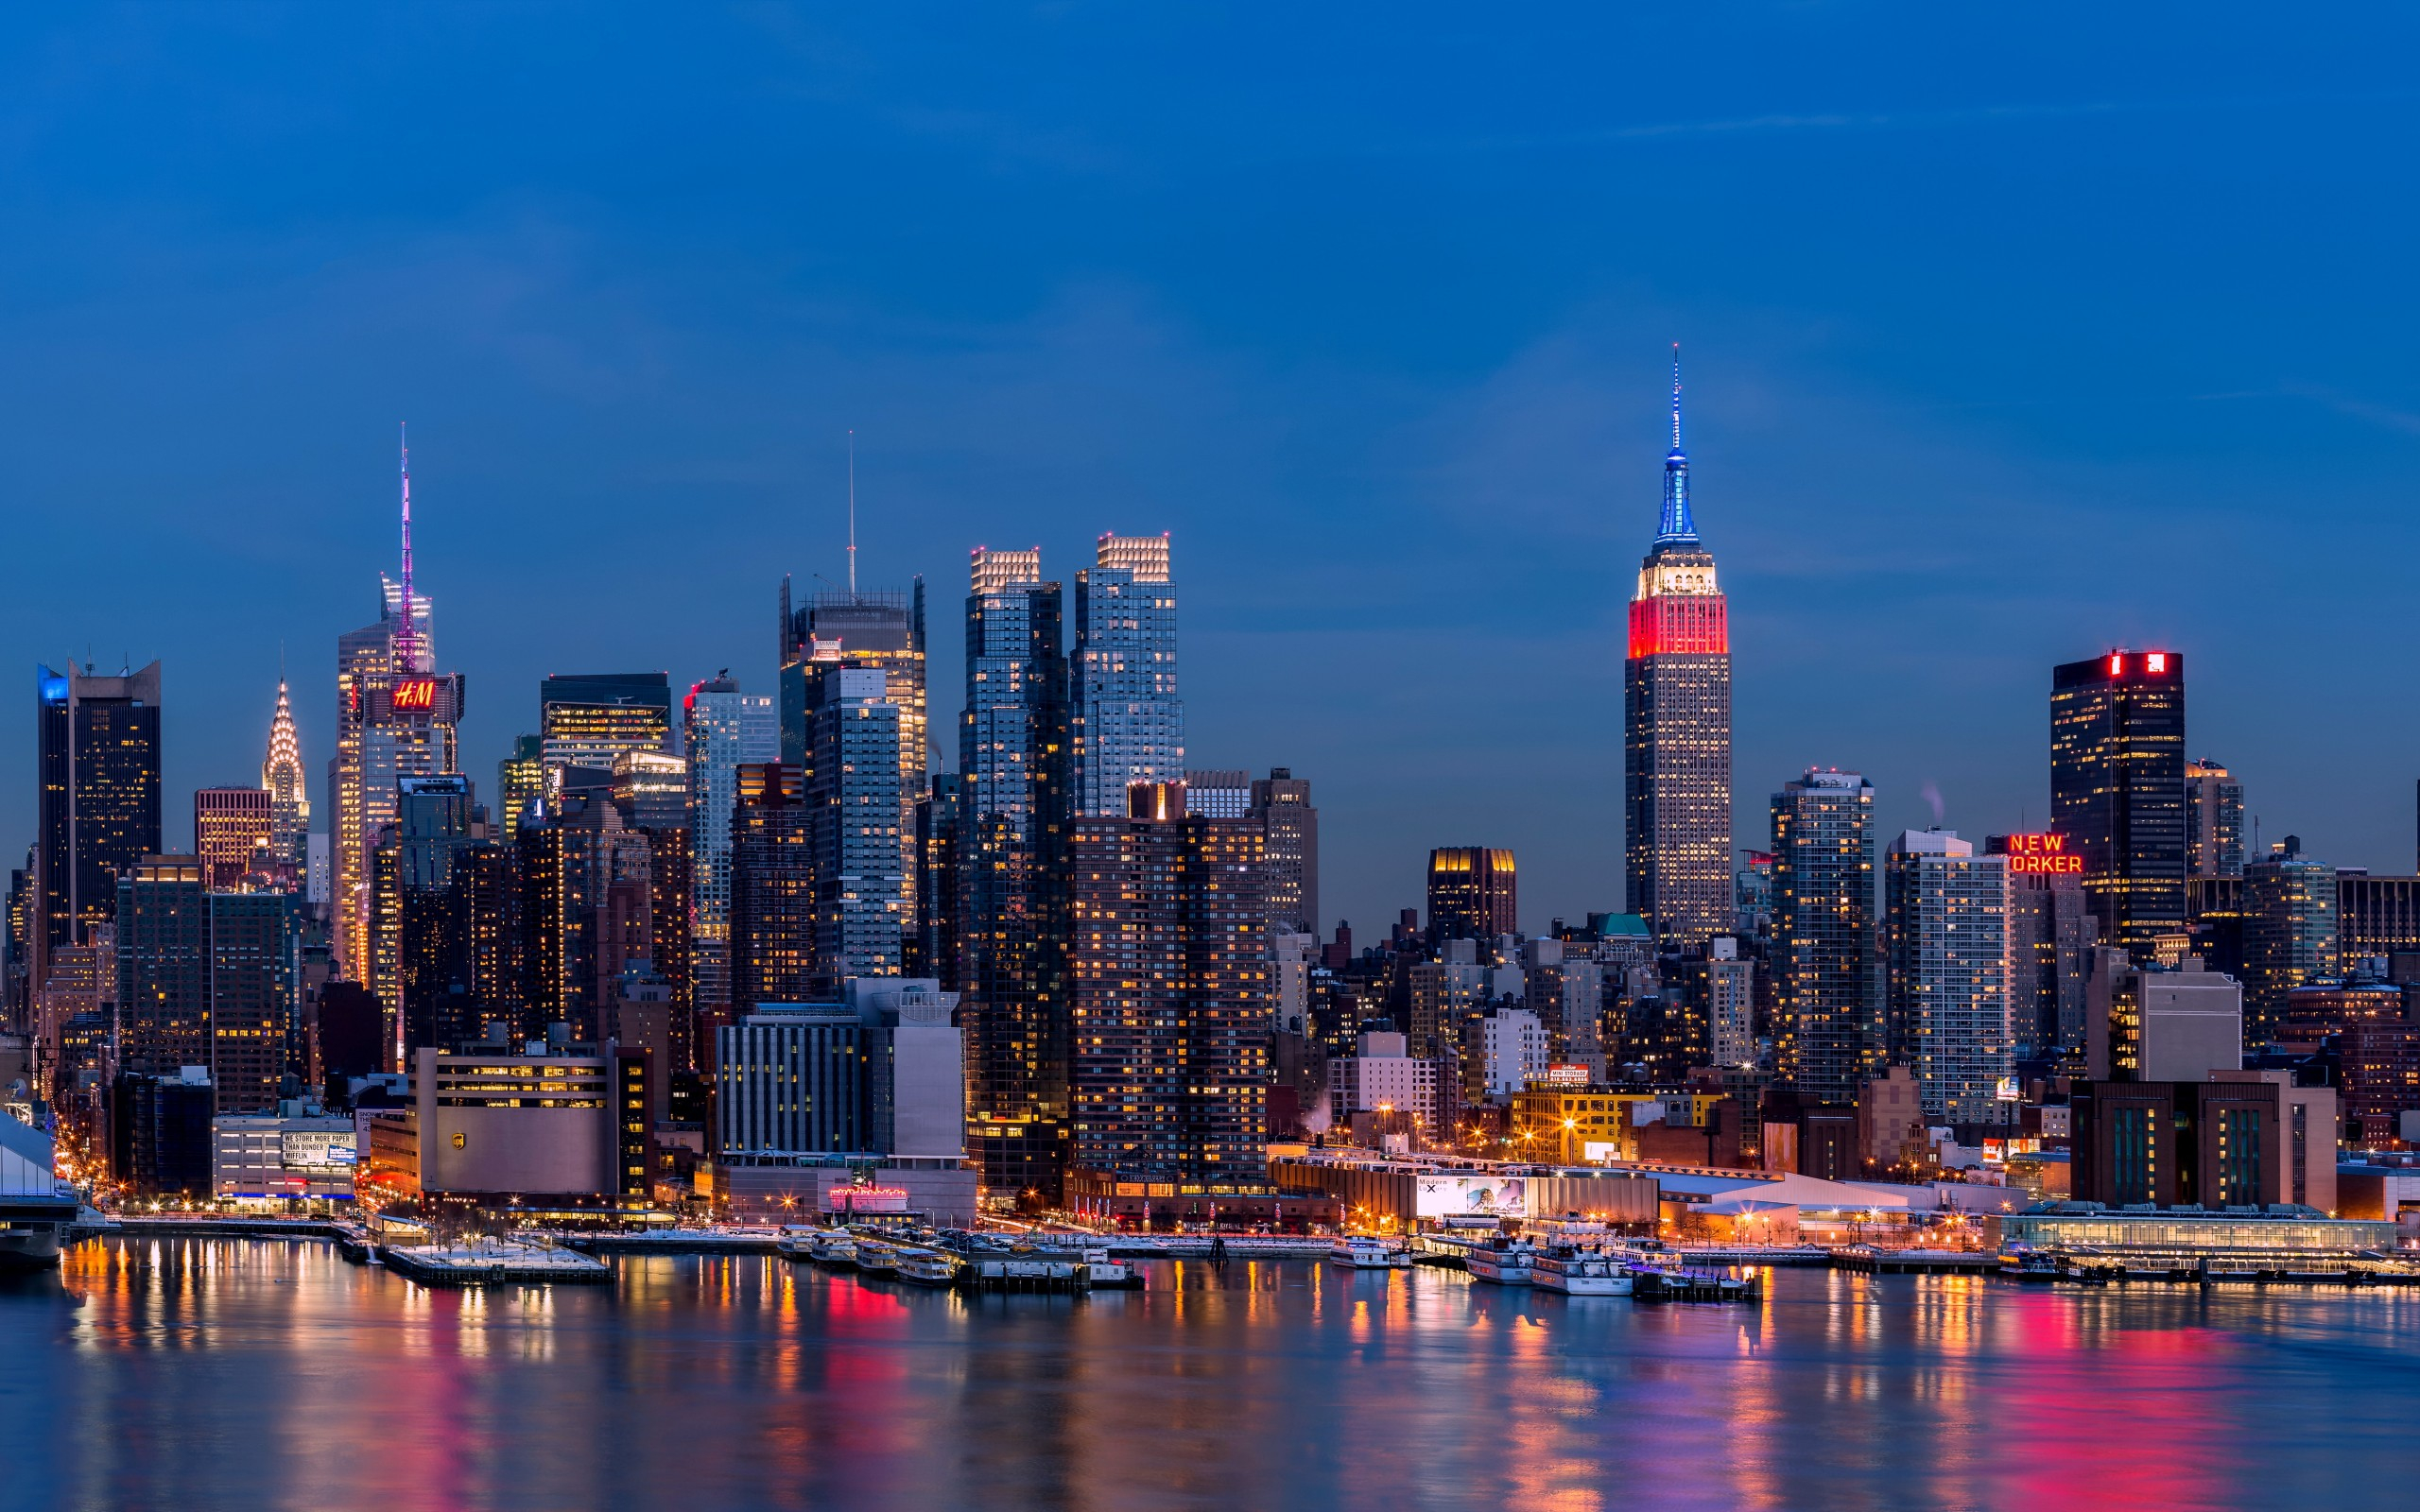 Google Wallpaper Hd Fondos De Pantalla De Nueva York Wallpapers New York Hd